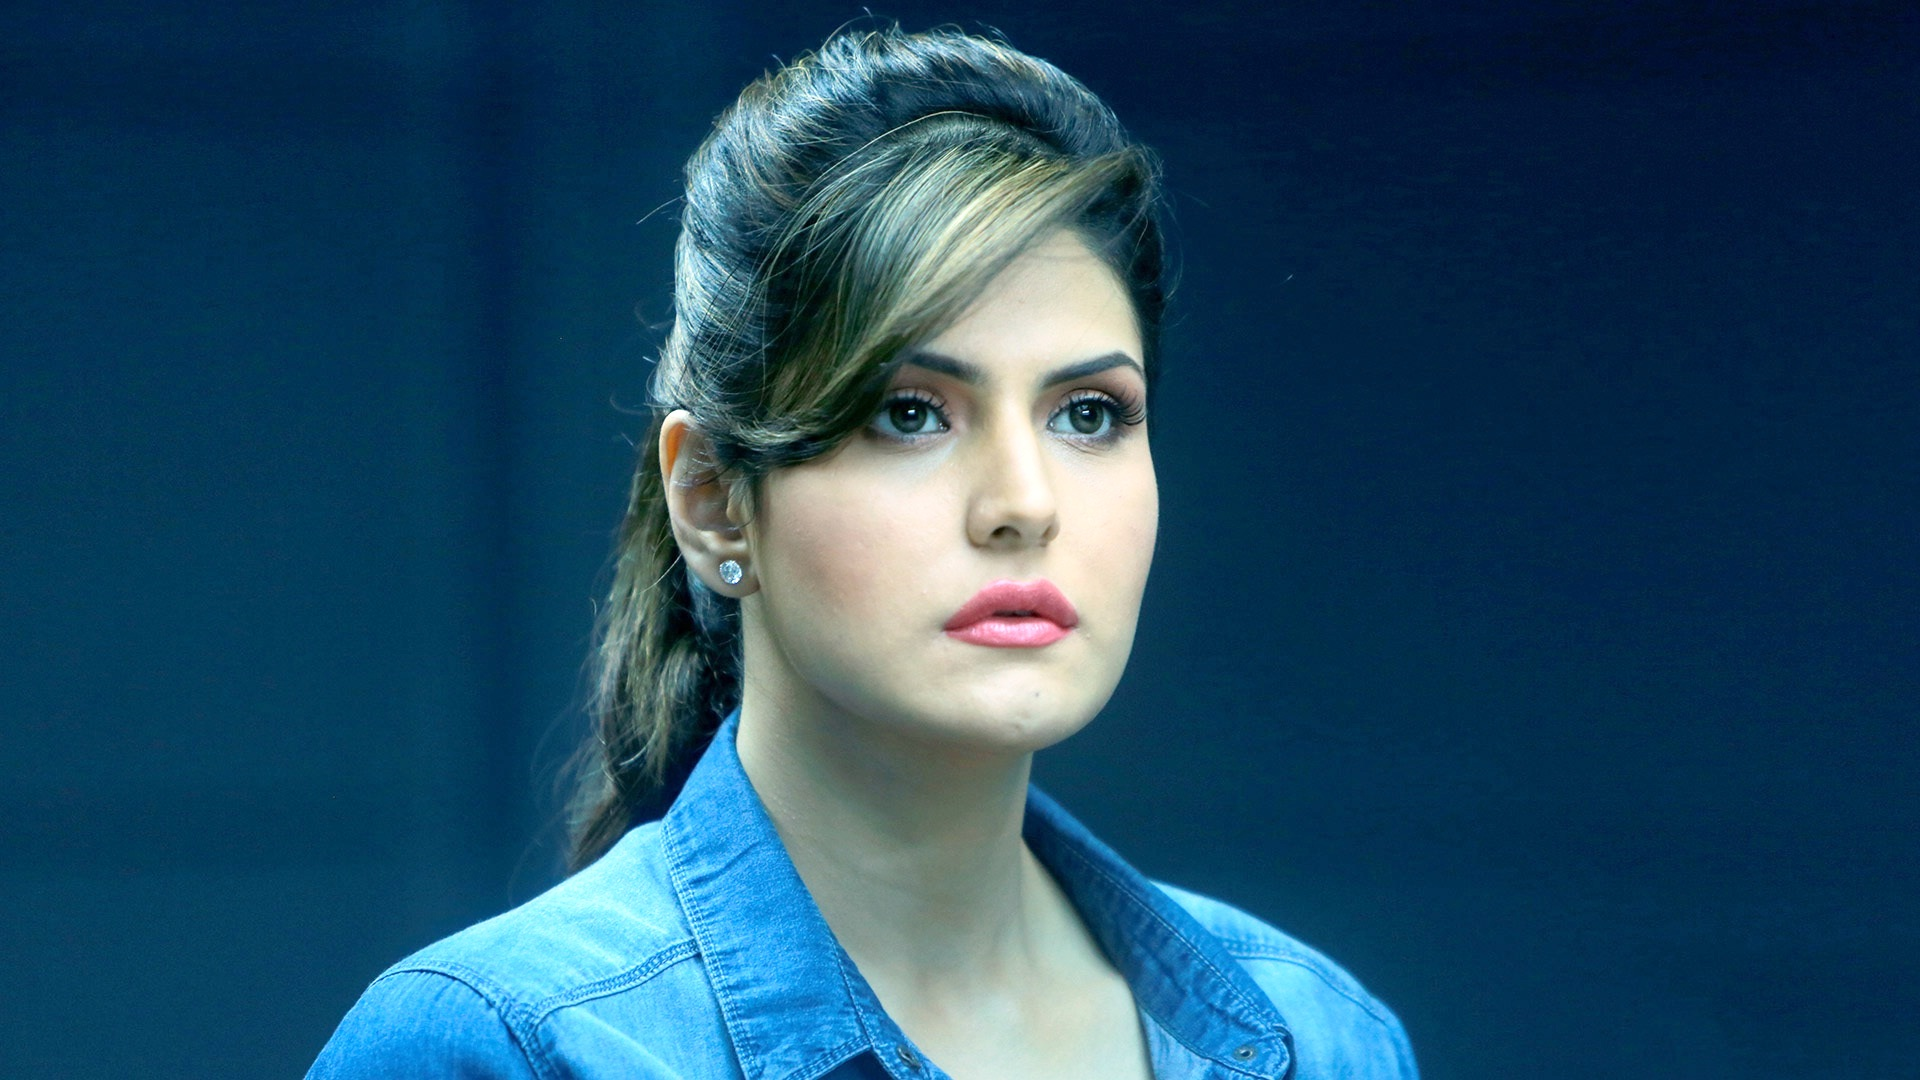 bollywood actress zarine khan hd wallpaper